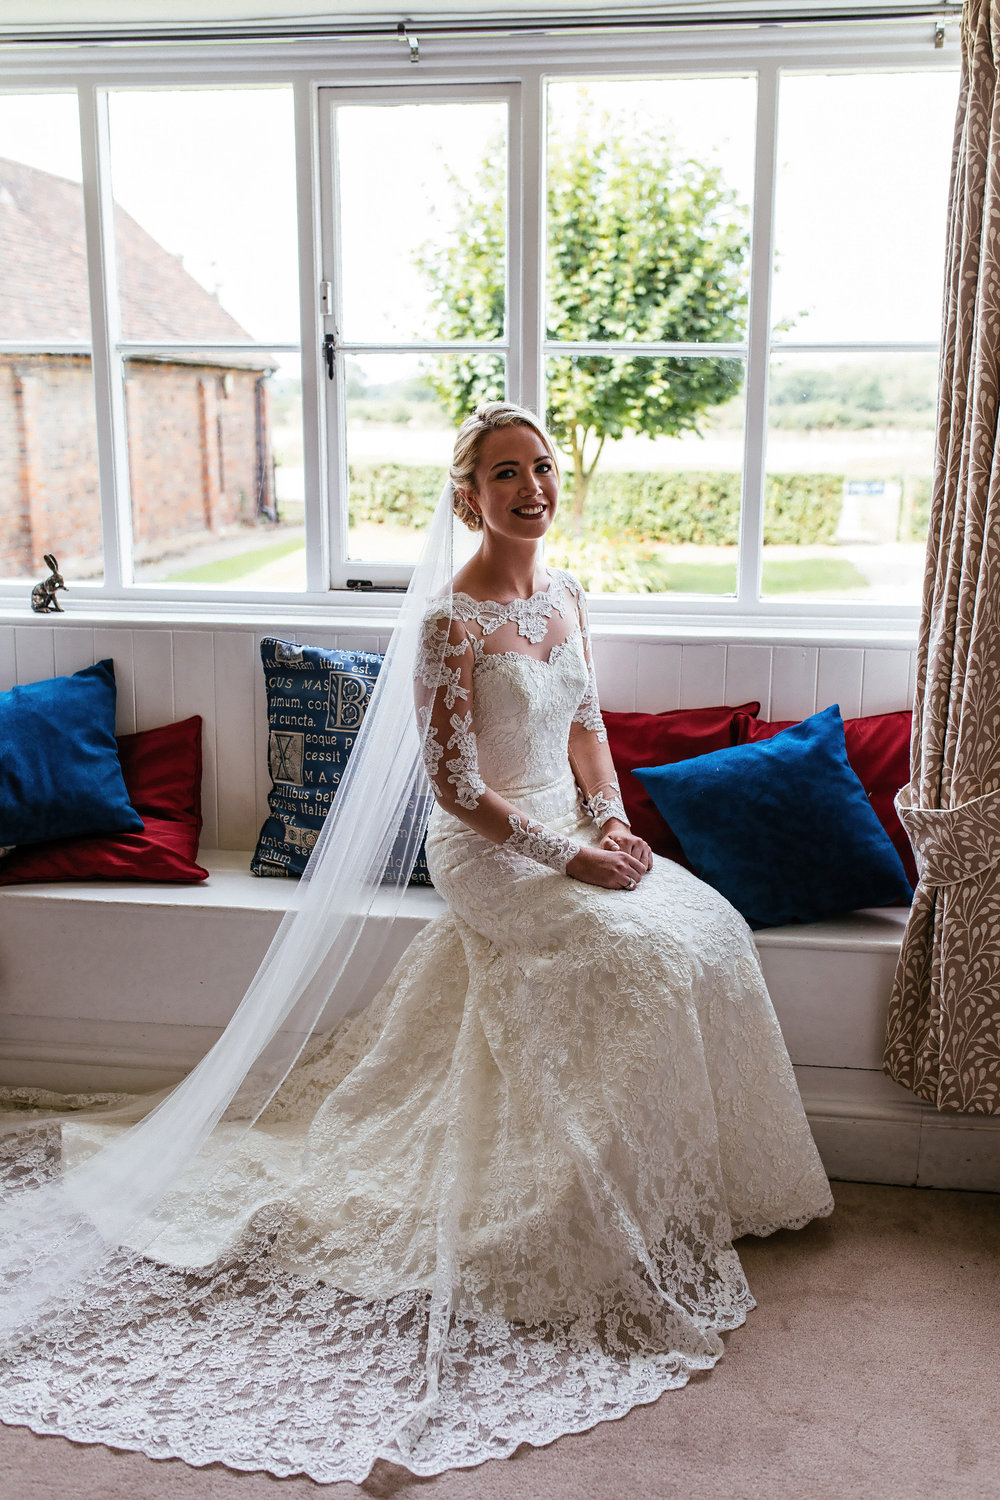 Biddenden Wedding Photographer 0026.jpg